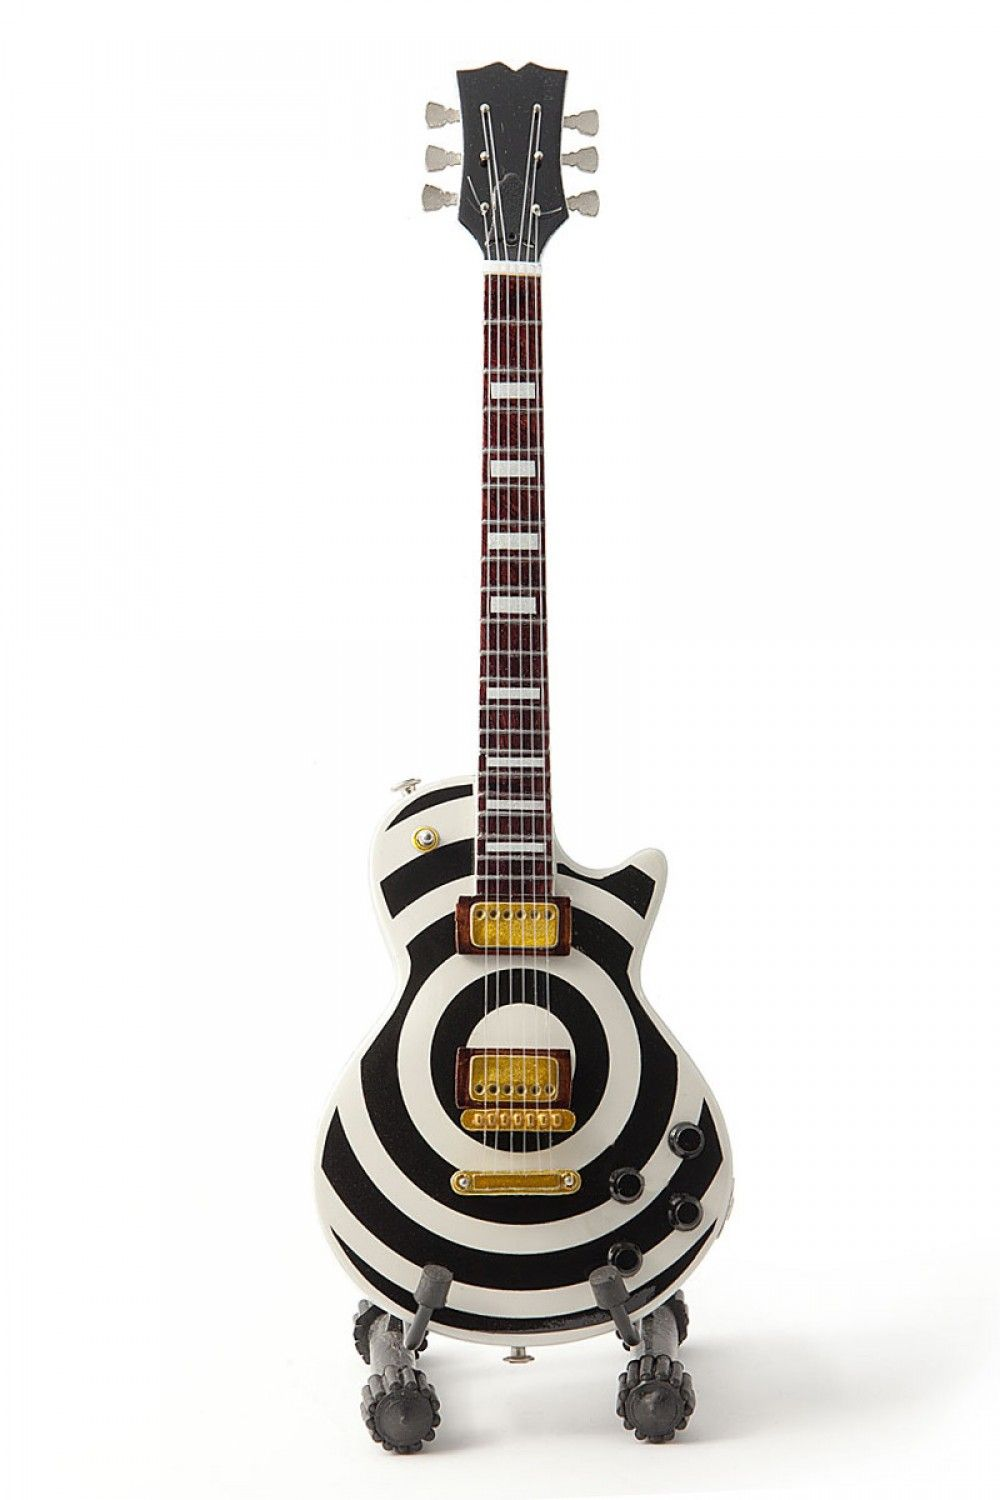 images of famous guitars | Famous Retailer of Amplified Clothing and T-Shirts | Gibson Les Paul ...